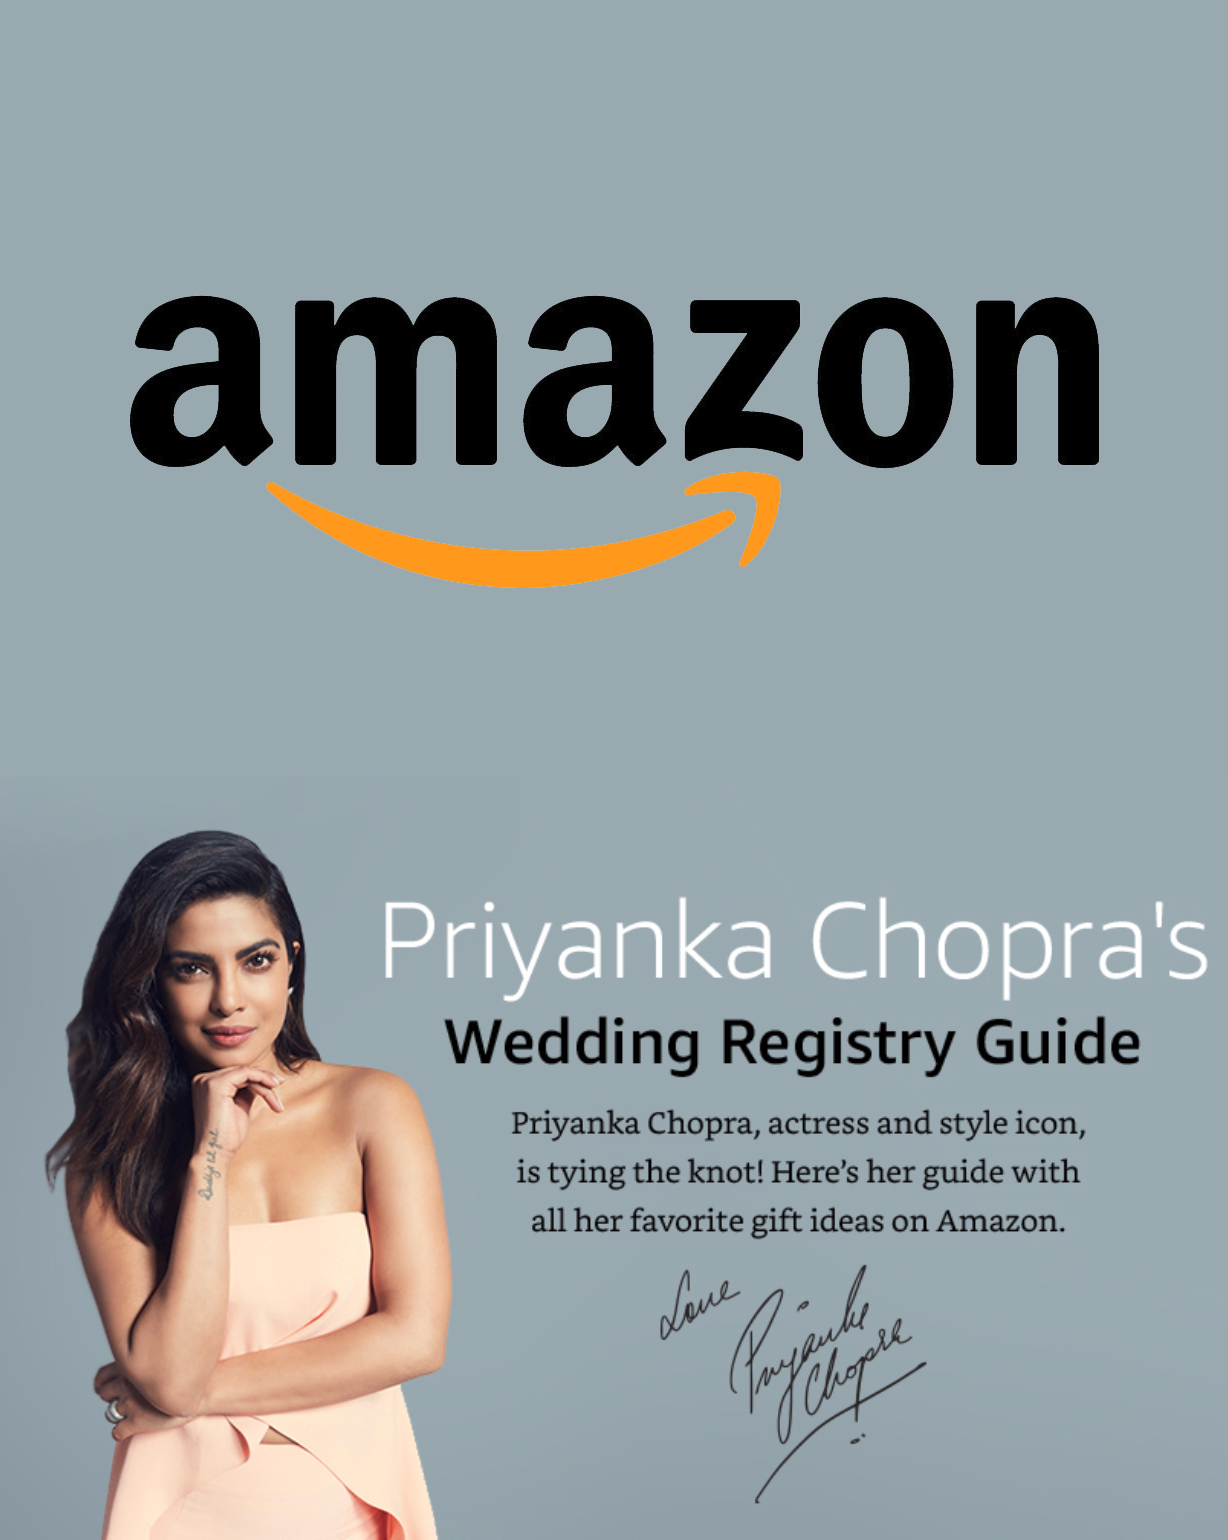 Priyanka Chopra S Wedding Registry On Amazon Wedding Registry Guide Priyanka Chopra Wedding Wedding Registry